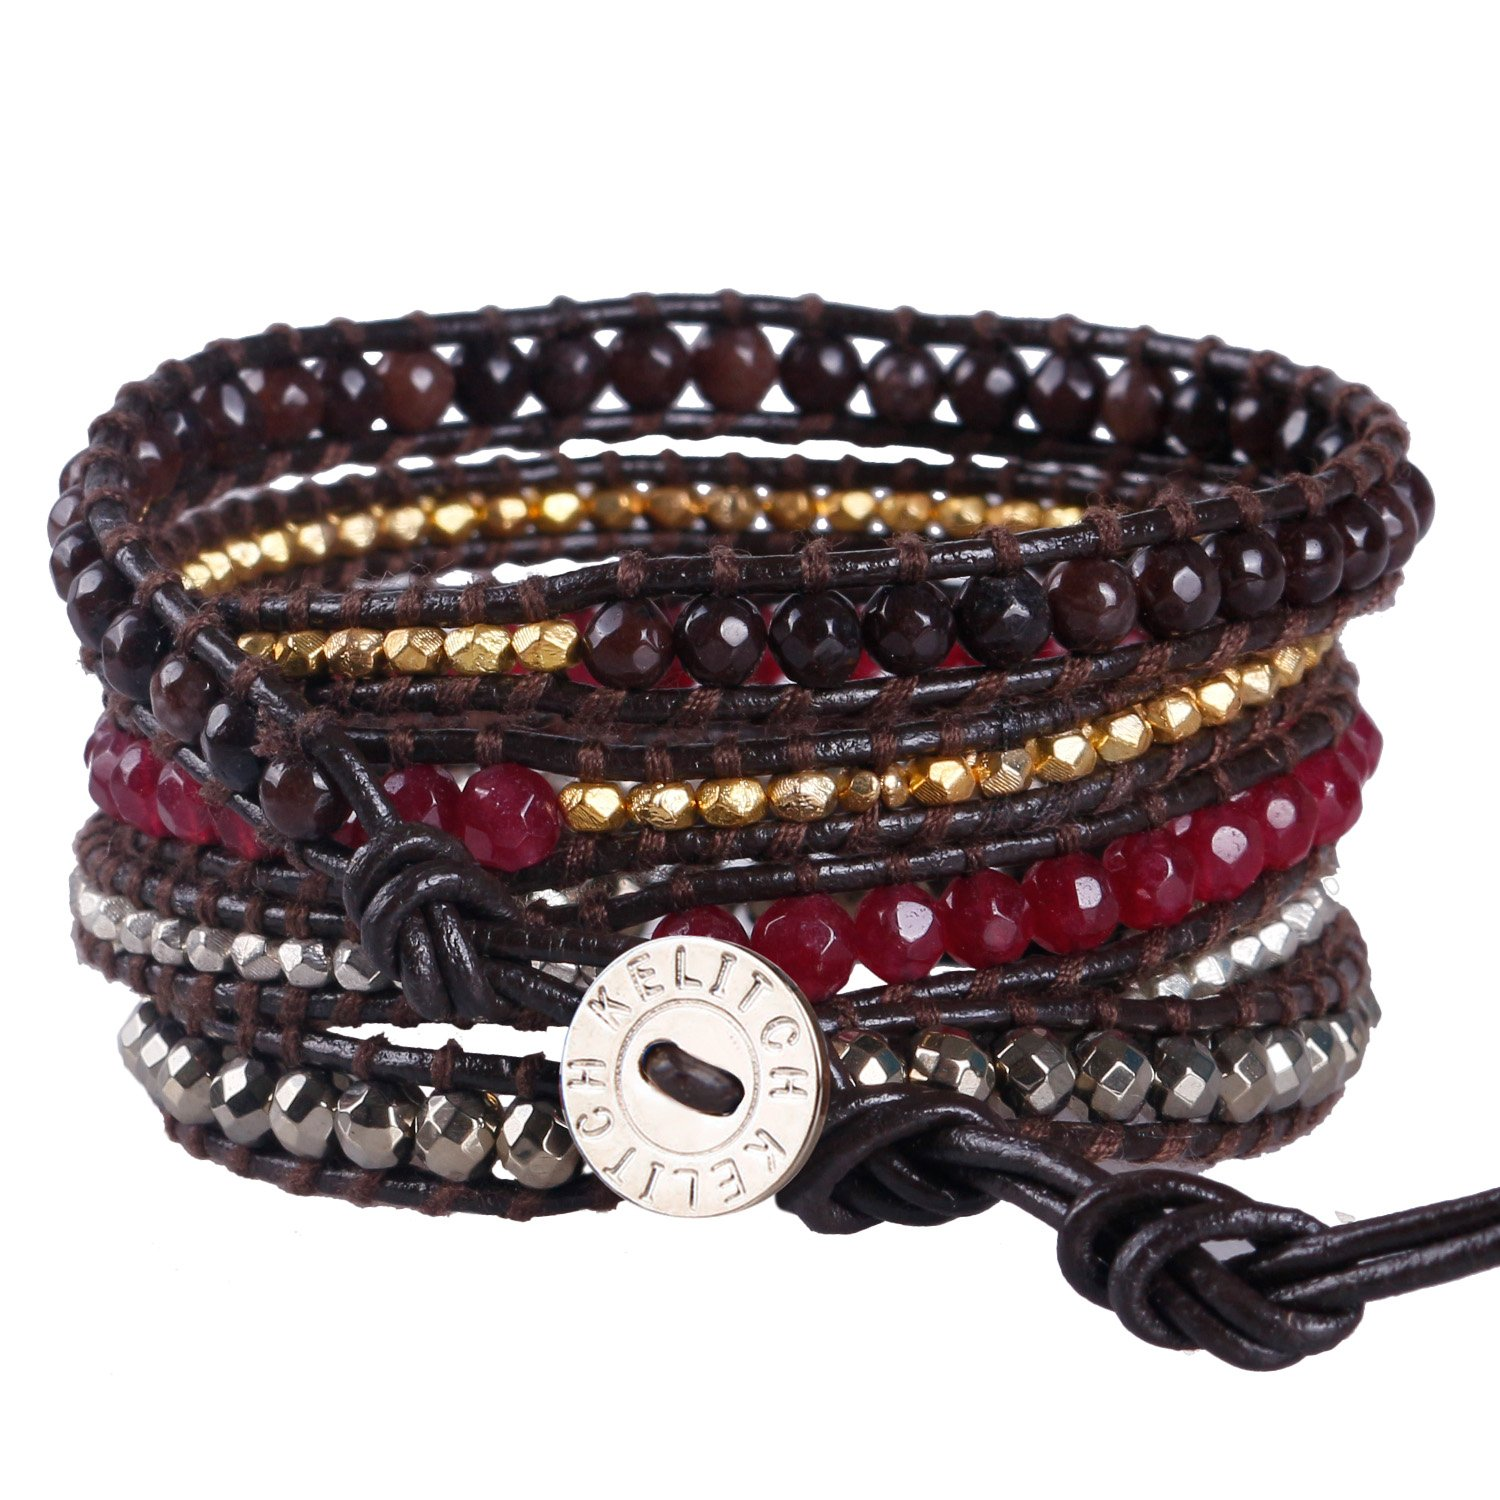 KELITCH Mix Beaded with Metal Bead Bracelet on Leather 5 Wrap Bracelet Handmade New Top Jewelry (Red)